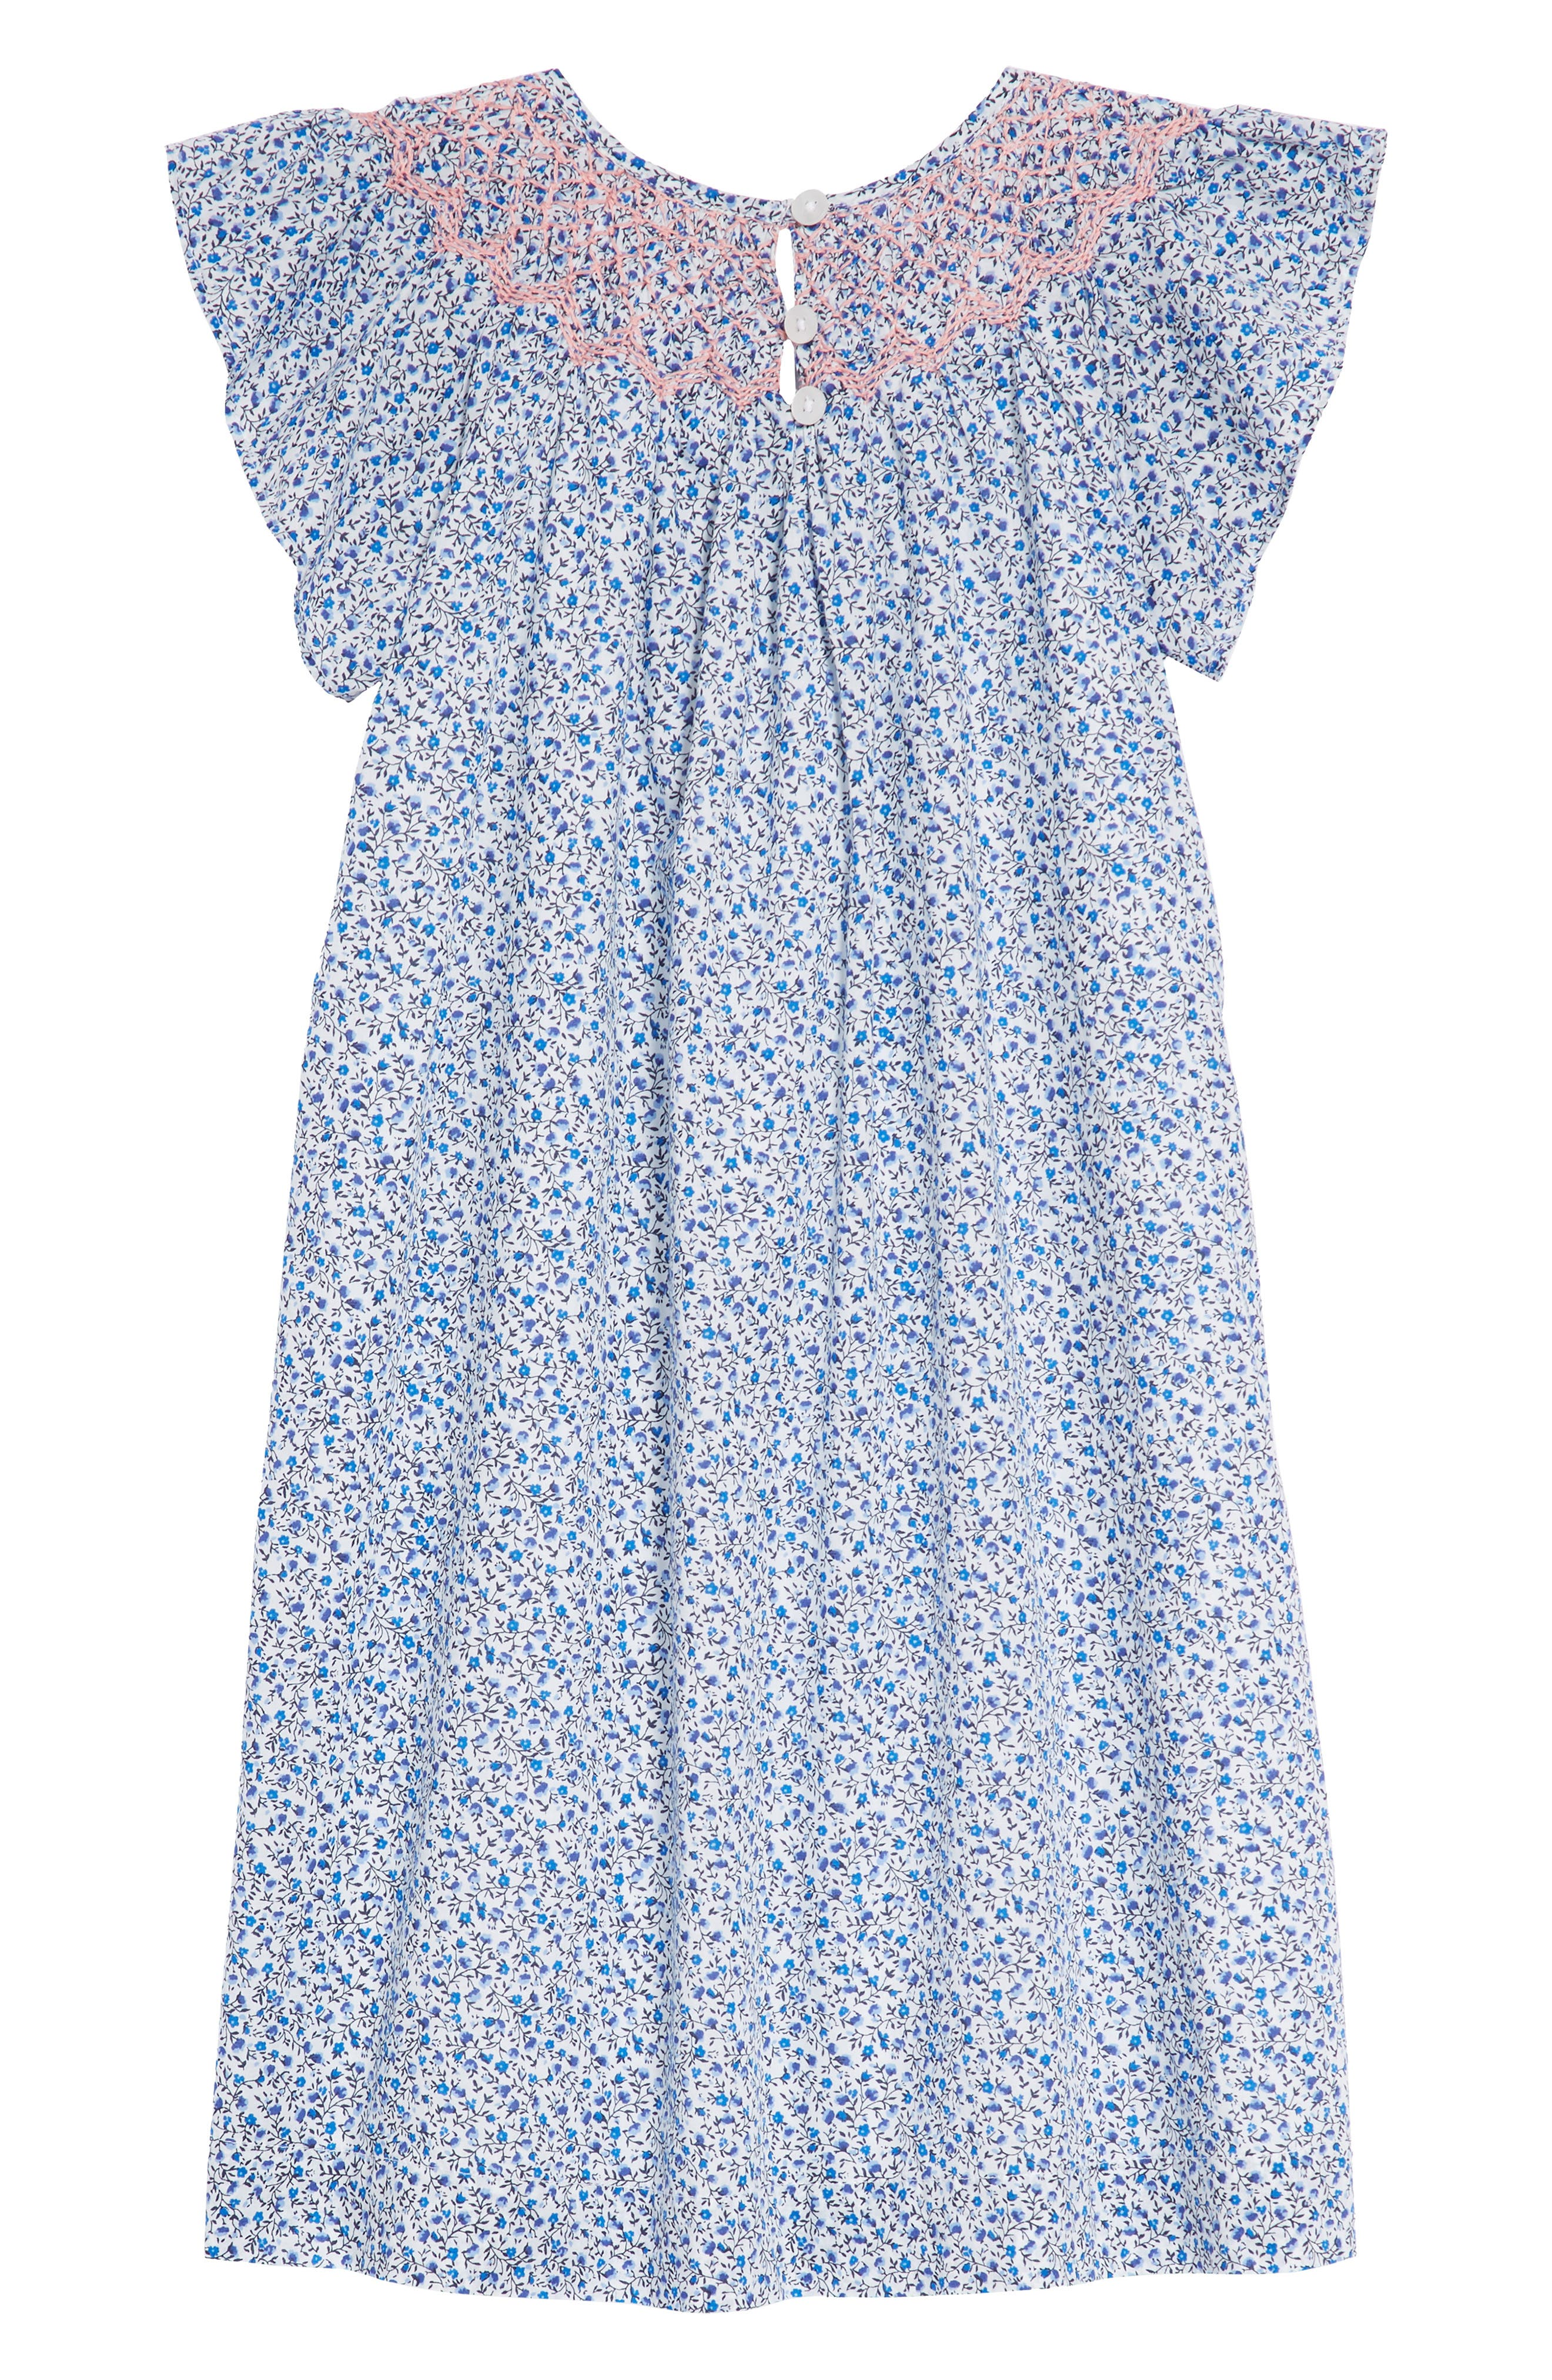 RUBY & BLOOM,                             Smocked Ditzy Dress,                             Alternate thumbnail 2, color,                             100